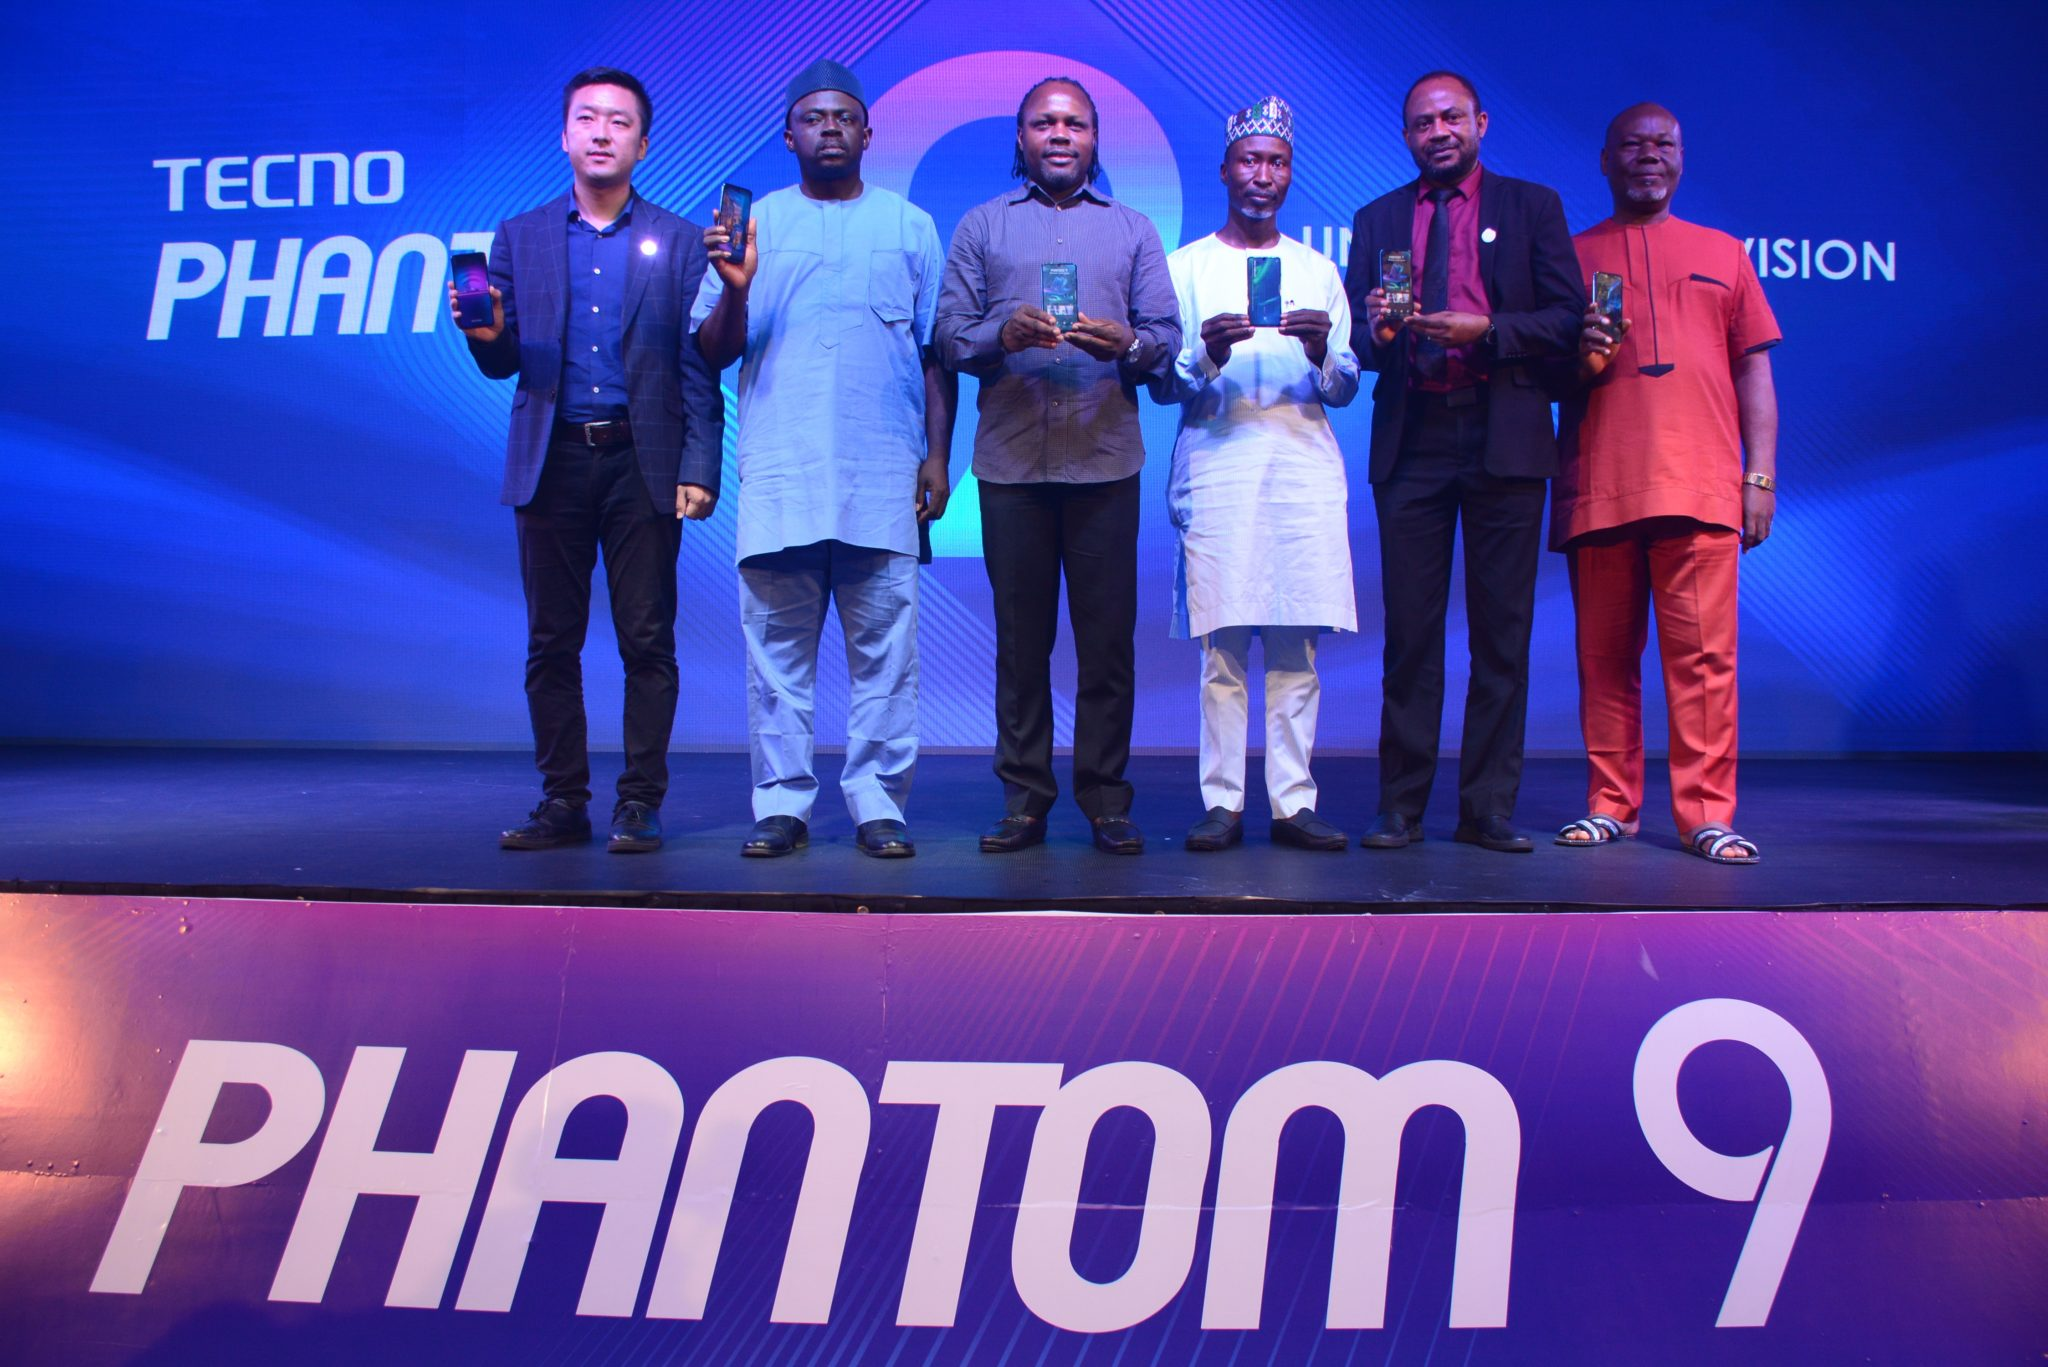 TECNO Launches Phantom 9